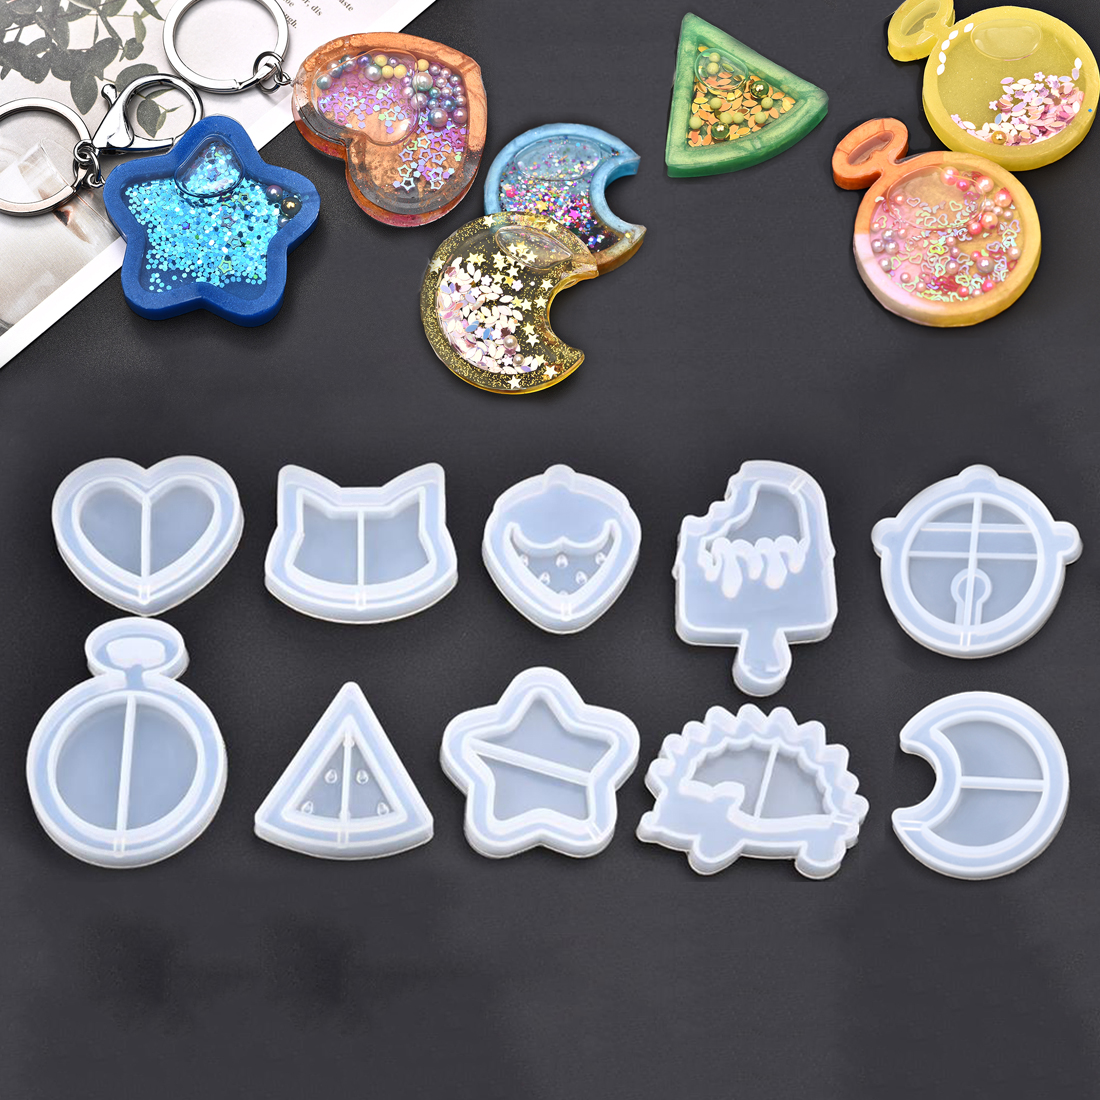 Silicone Resin Jewelry Making Molds Heart Star Moon Ice Cream UV Epoxy Resin Moulds Key Chain Pendant Craft Jewelry Tools